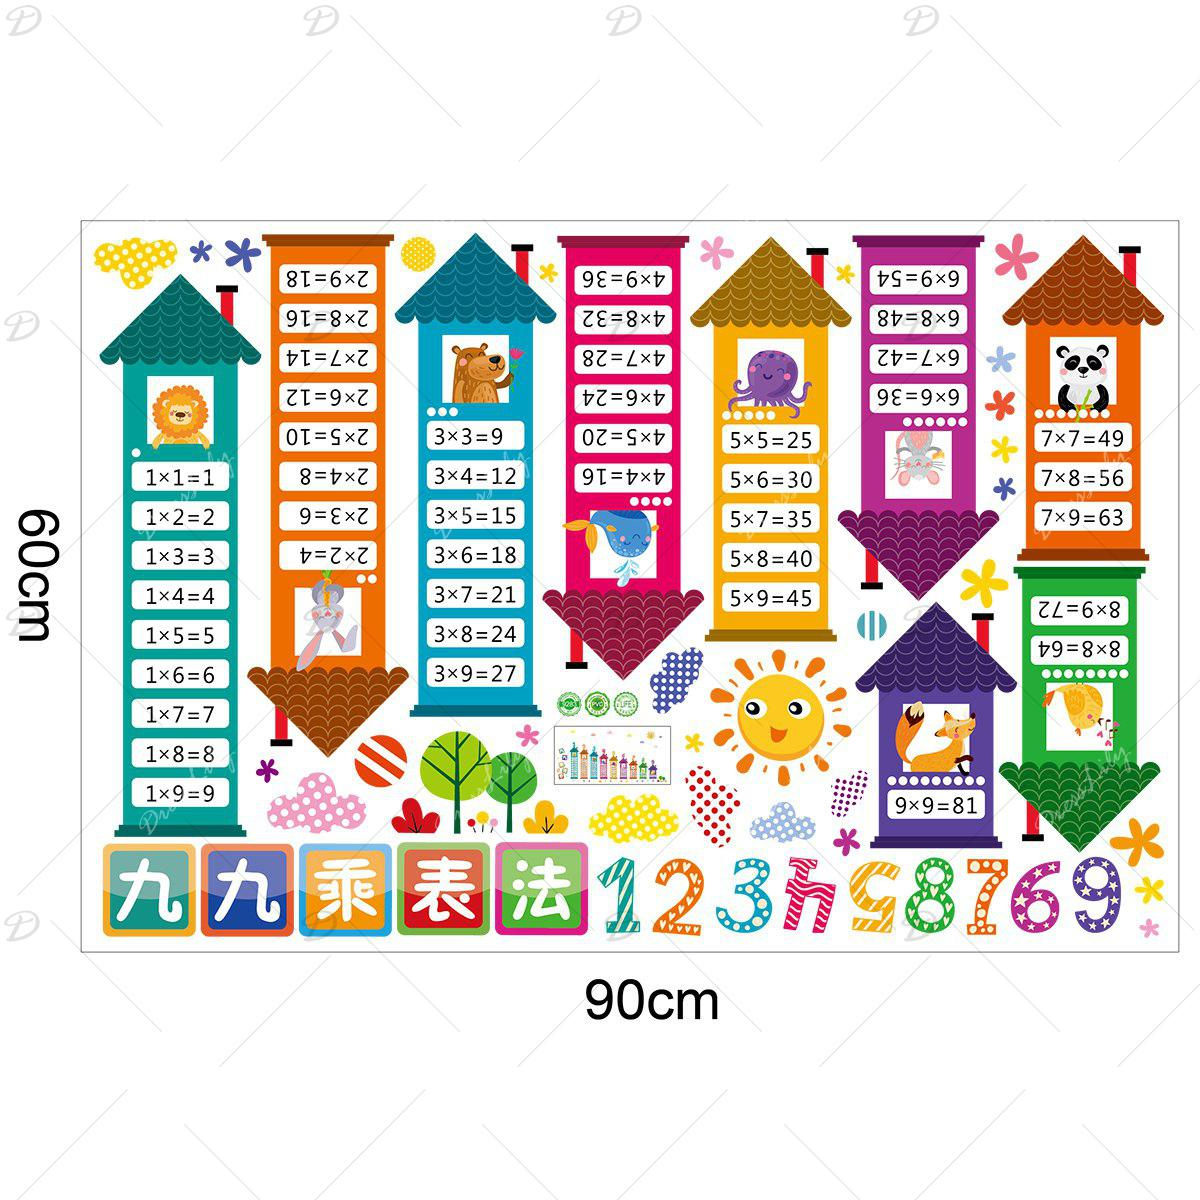 Multiplication table kids choice image periodic table images multiplication table 1 200 images periodic table images 2017 multiplication table pattern wall art sticker for gamestrikefo Choice Image